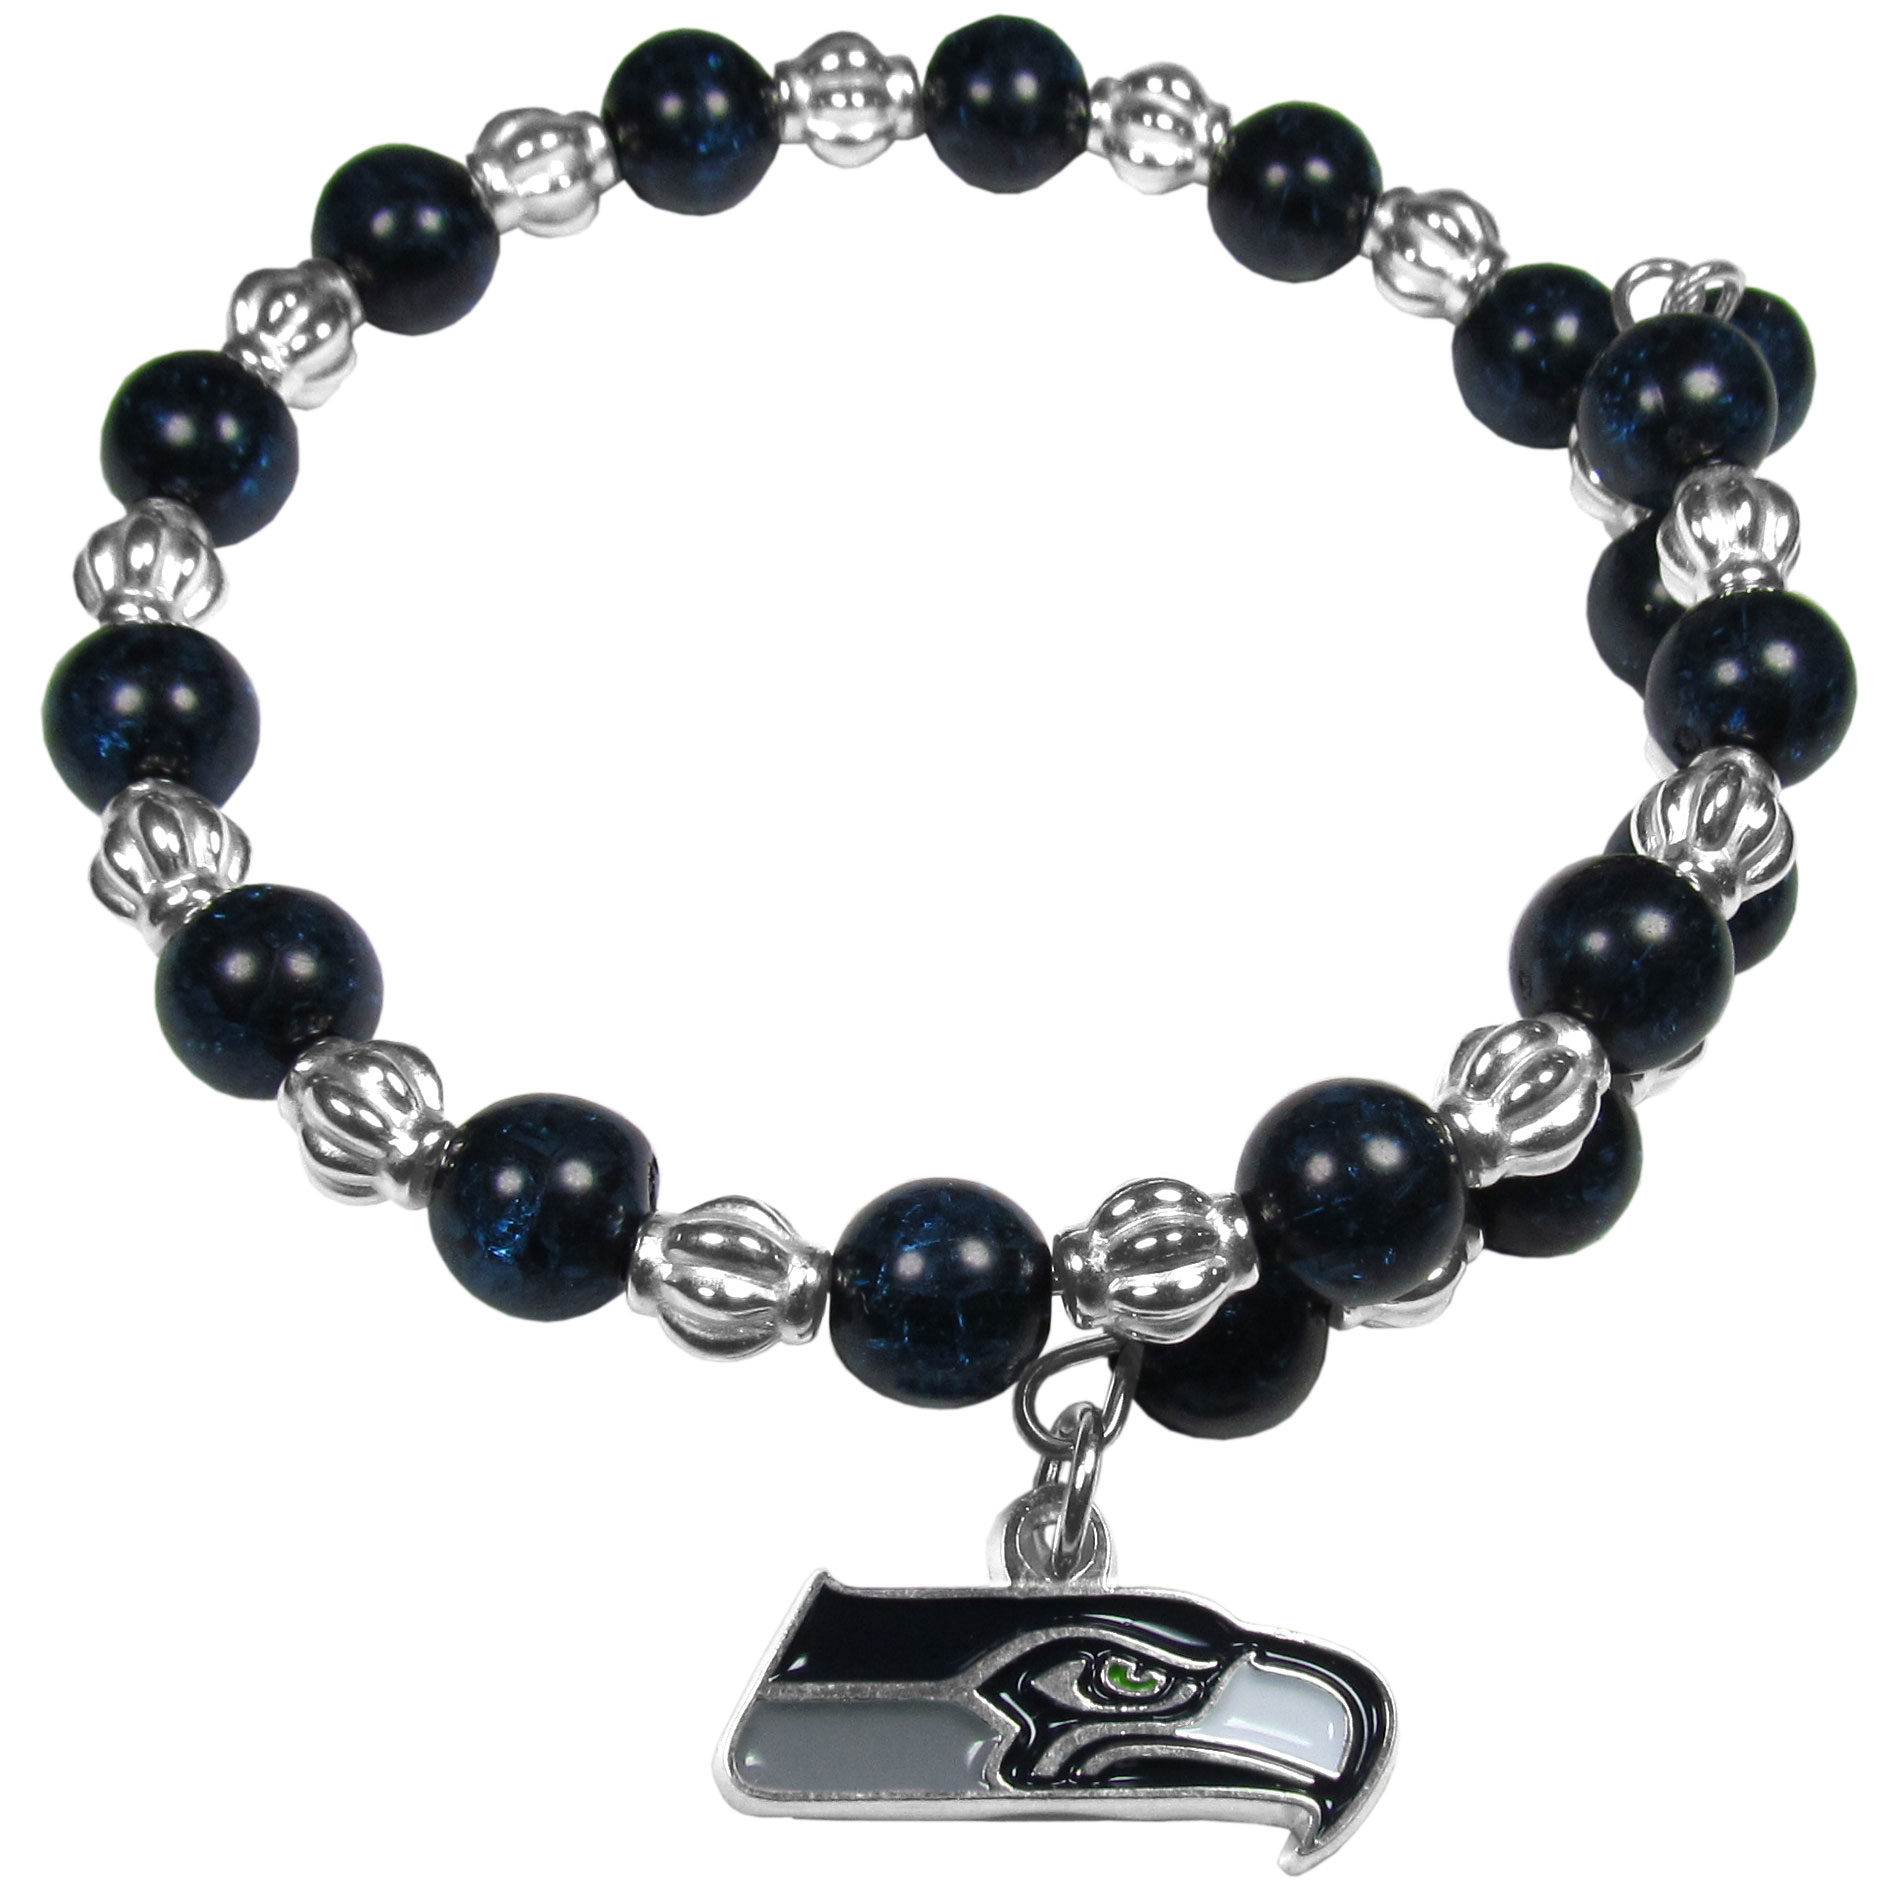 Seattle Seahawks Bead Memory Wire Bracelet - Our Seattle Seahawks memory wire bead bracelet is trendy way to show off your love of the game. The double wrap bracelet is completely covered in 7.5 mm crystals that are broken up with silvertoned beads creating a designer look with a sporty twist. The bracelet features a fully cast, metal team charm that has expertly enameled team colors. This fashion jewelry piece is a must-have for the die-hard fan that chic look that can dress up any outfit.